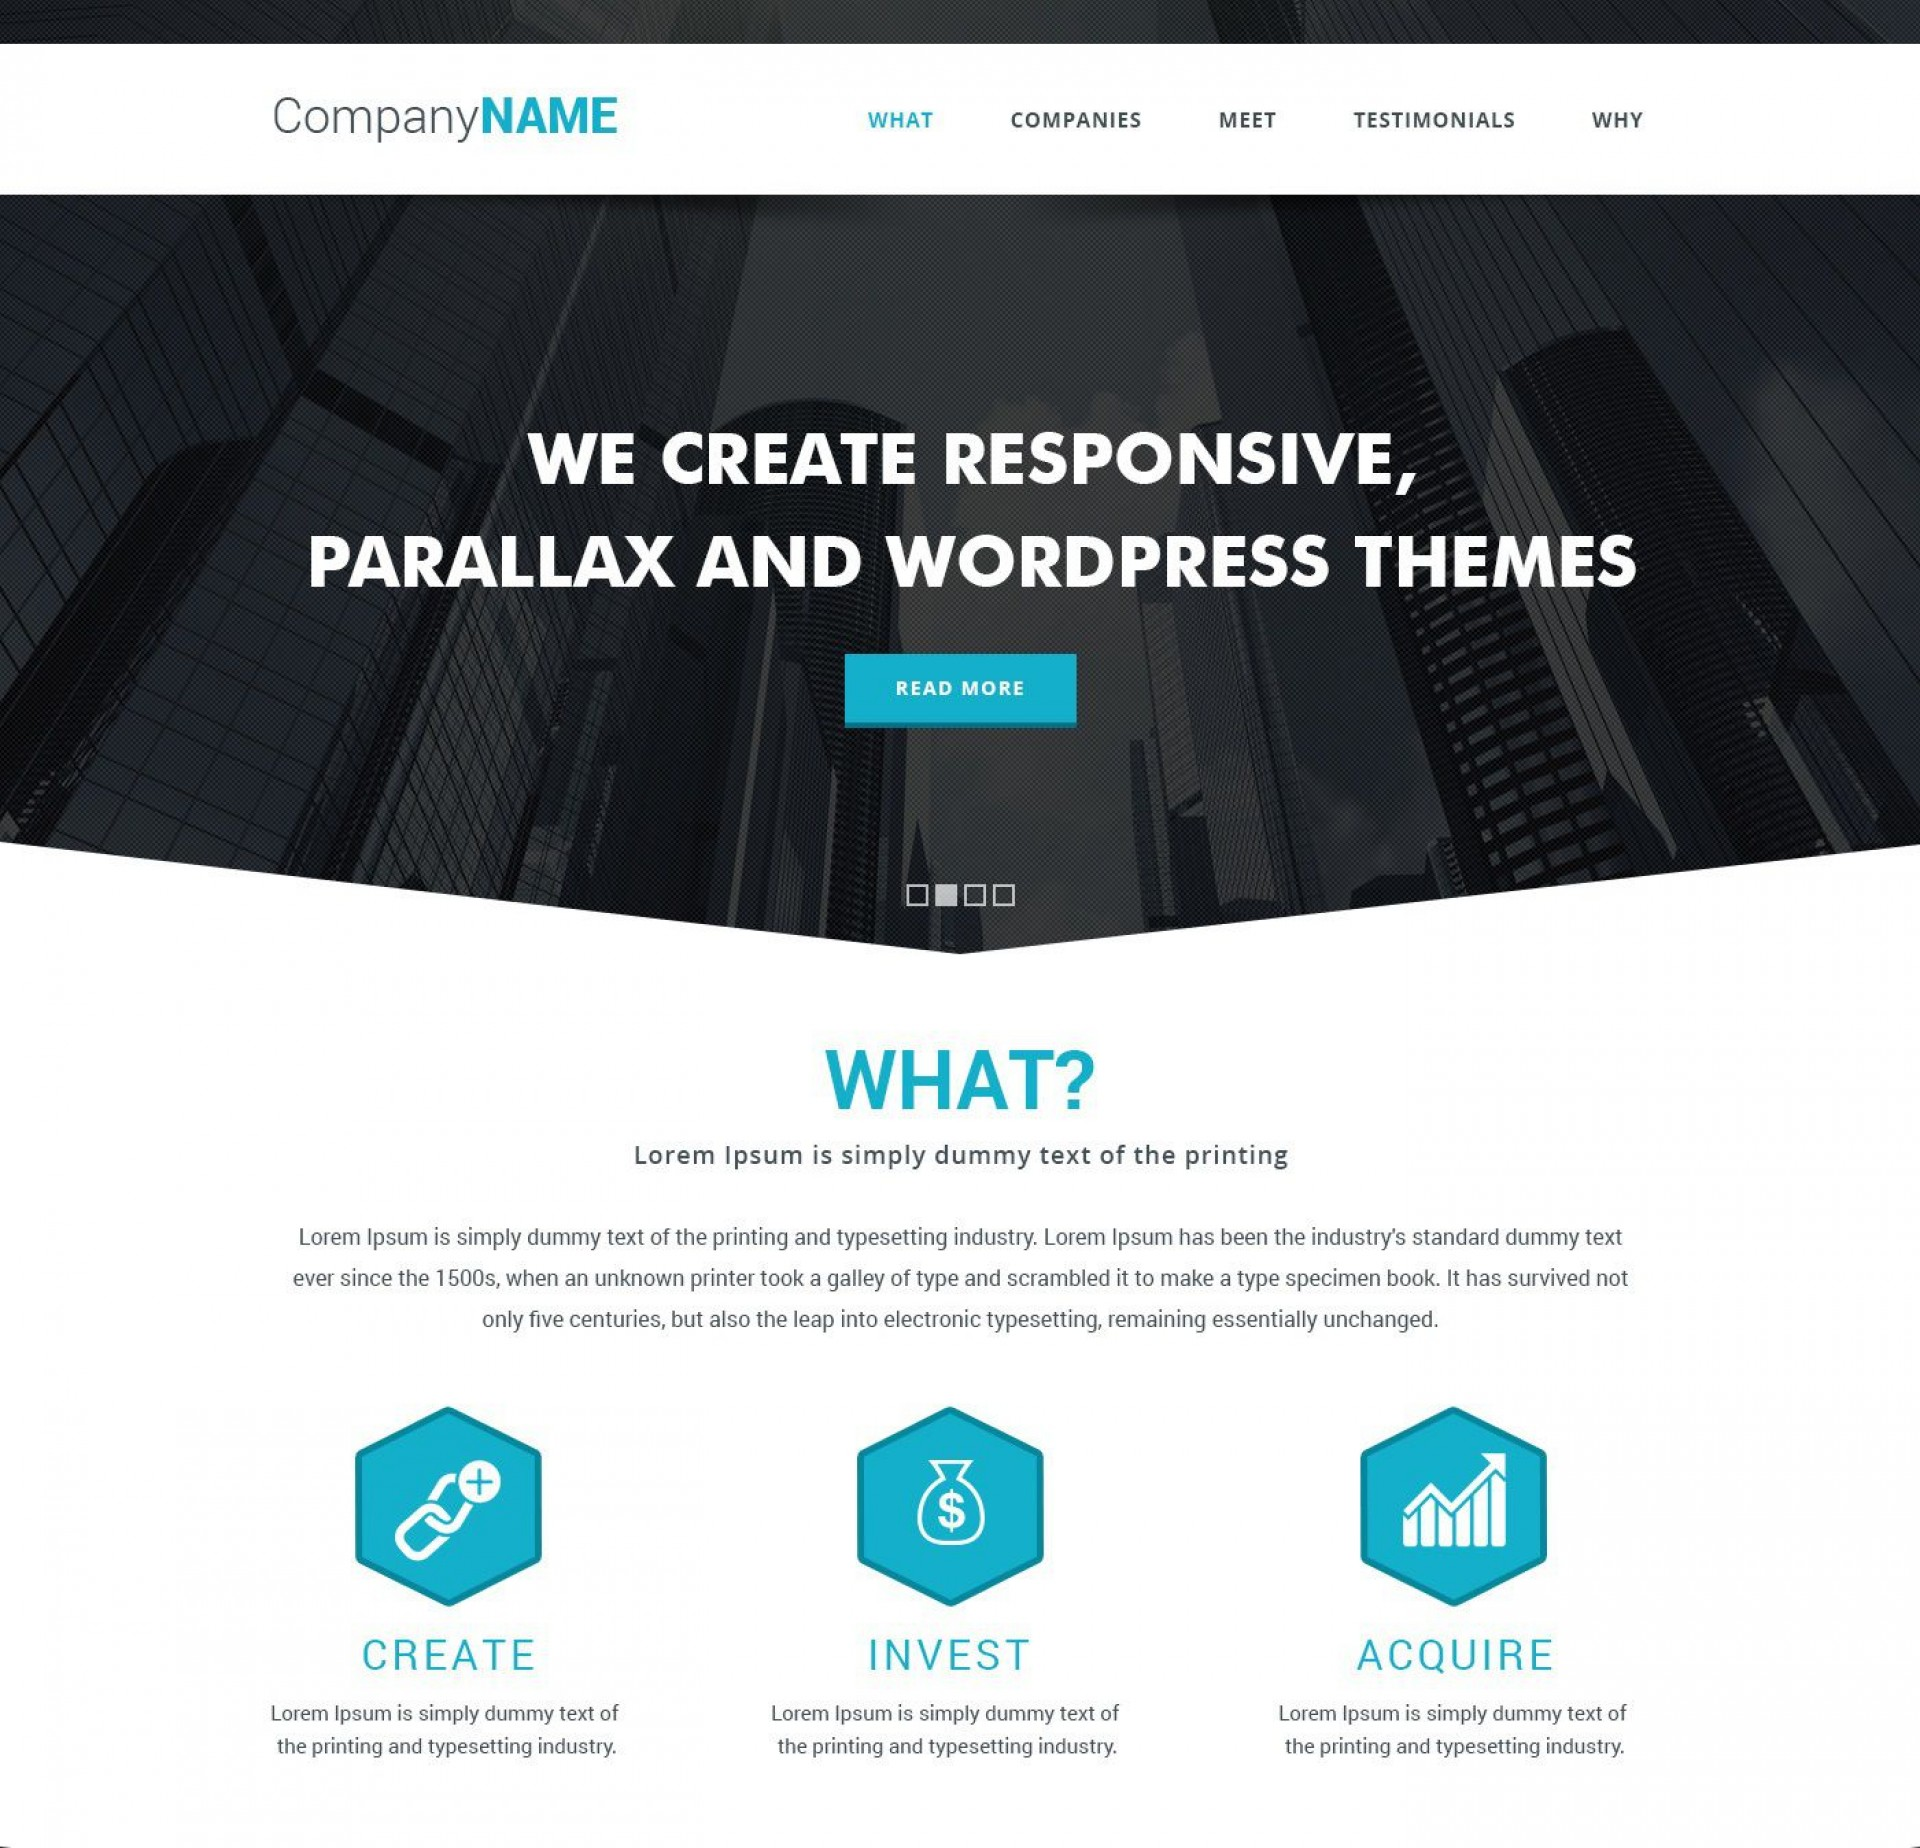 007 Wonderful Simple Web Page Template Free Download Image  One Website Html With Cs1920